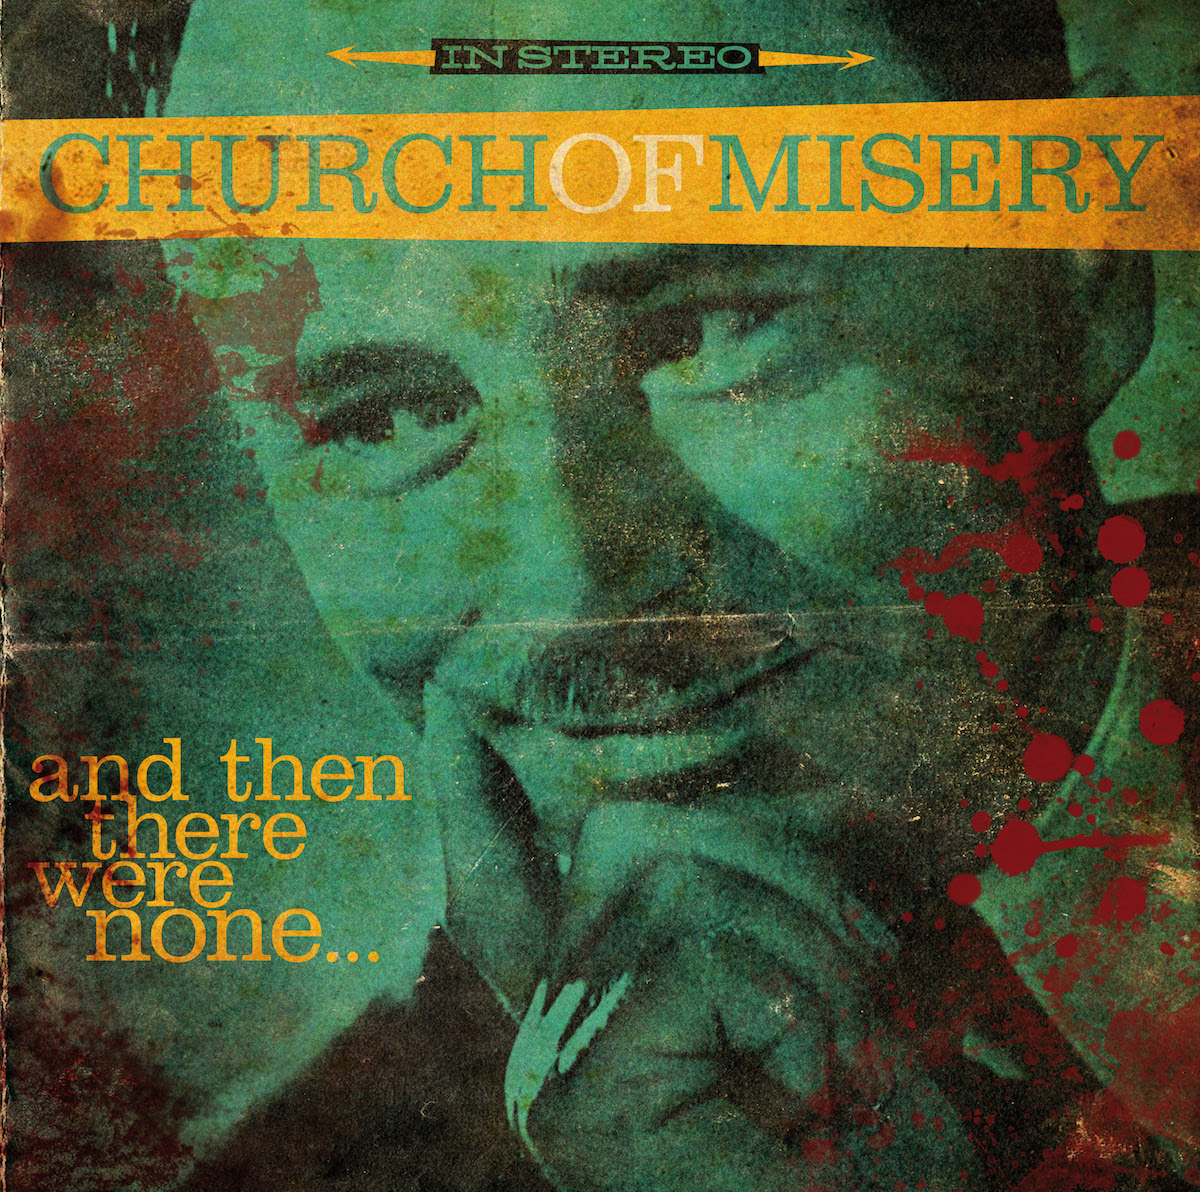 Church of Misery: and then there were none (2016) Book Cover